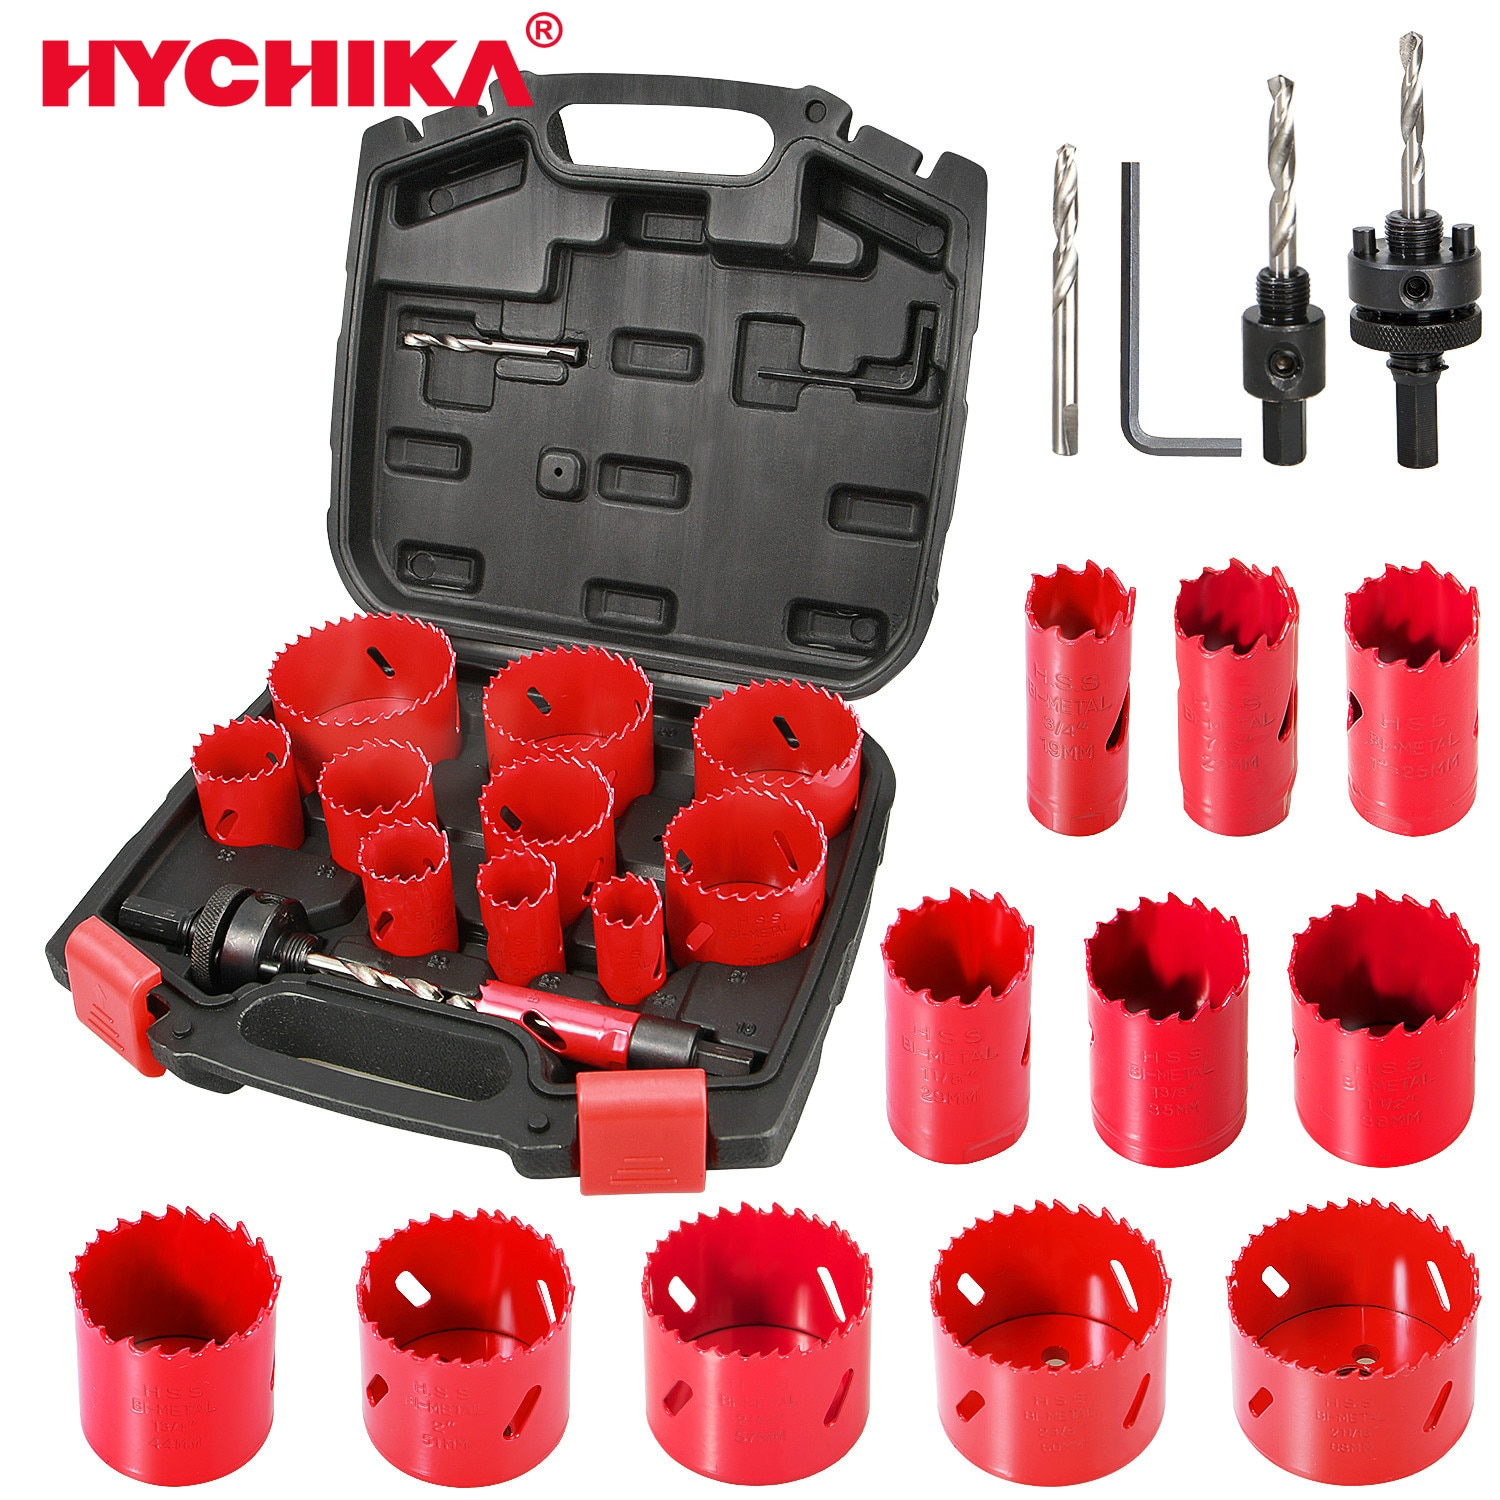 HYCHIKA Bi-Metal Hole Saw Kit 17 Pcs High Speed Steel Saw for Drilling PVC Board Metal and Plastic Plate